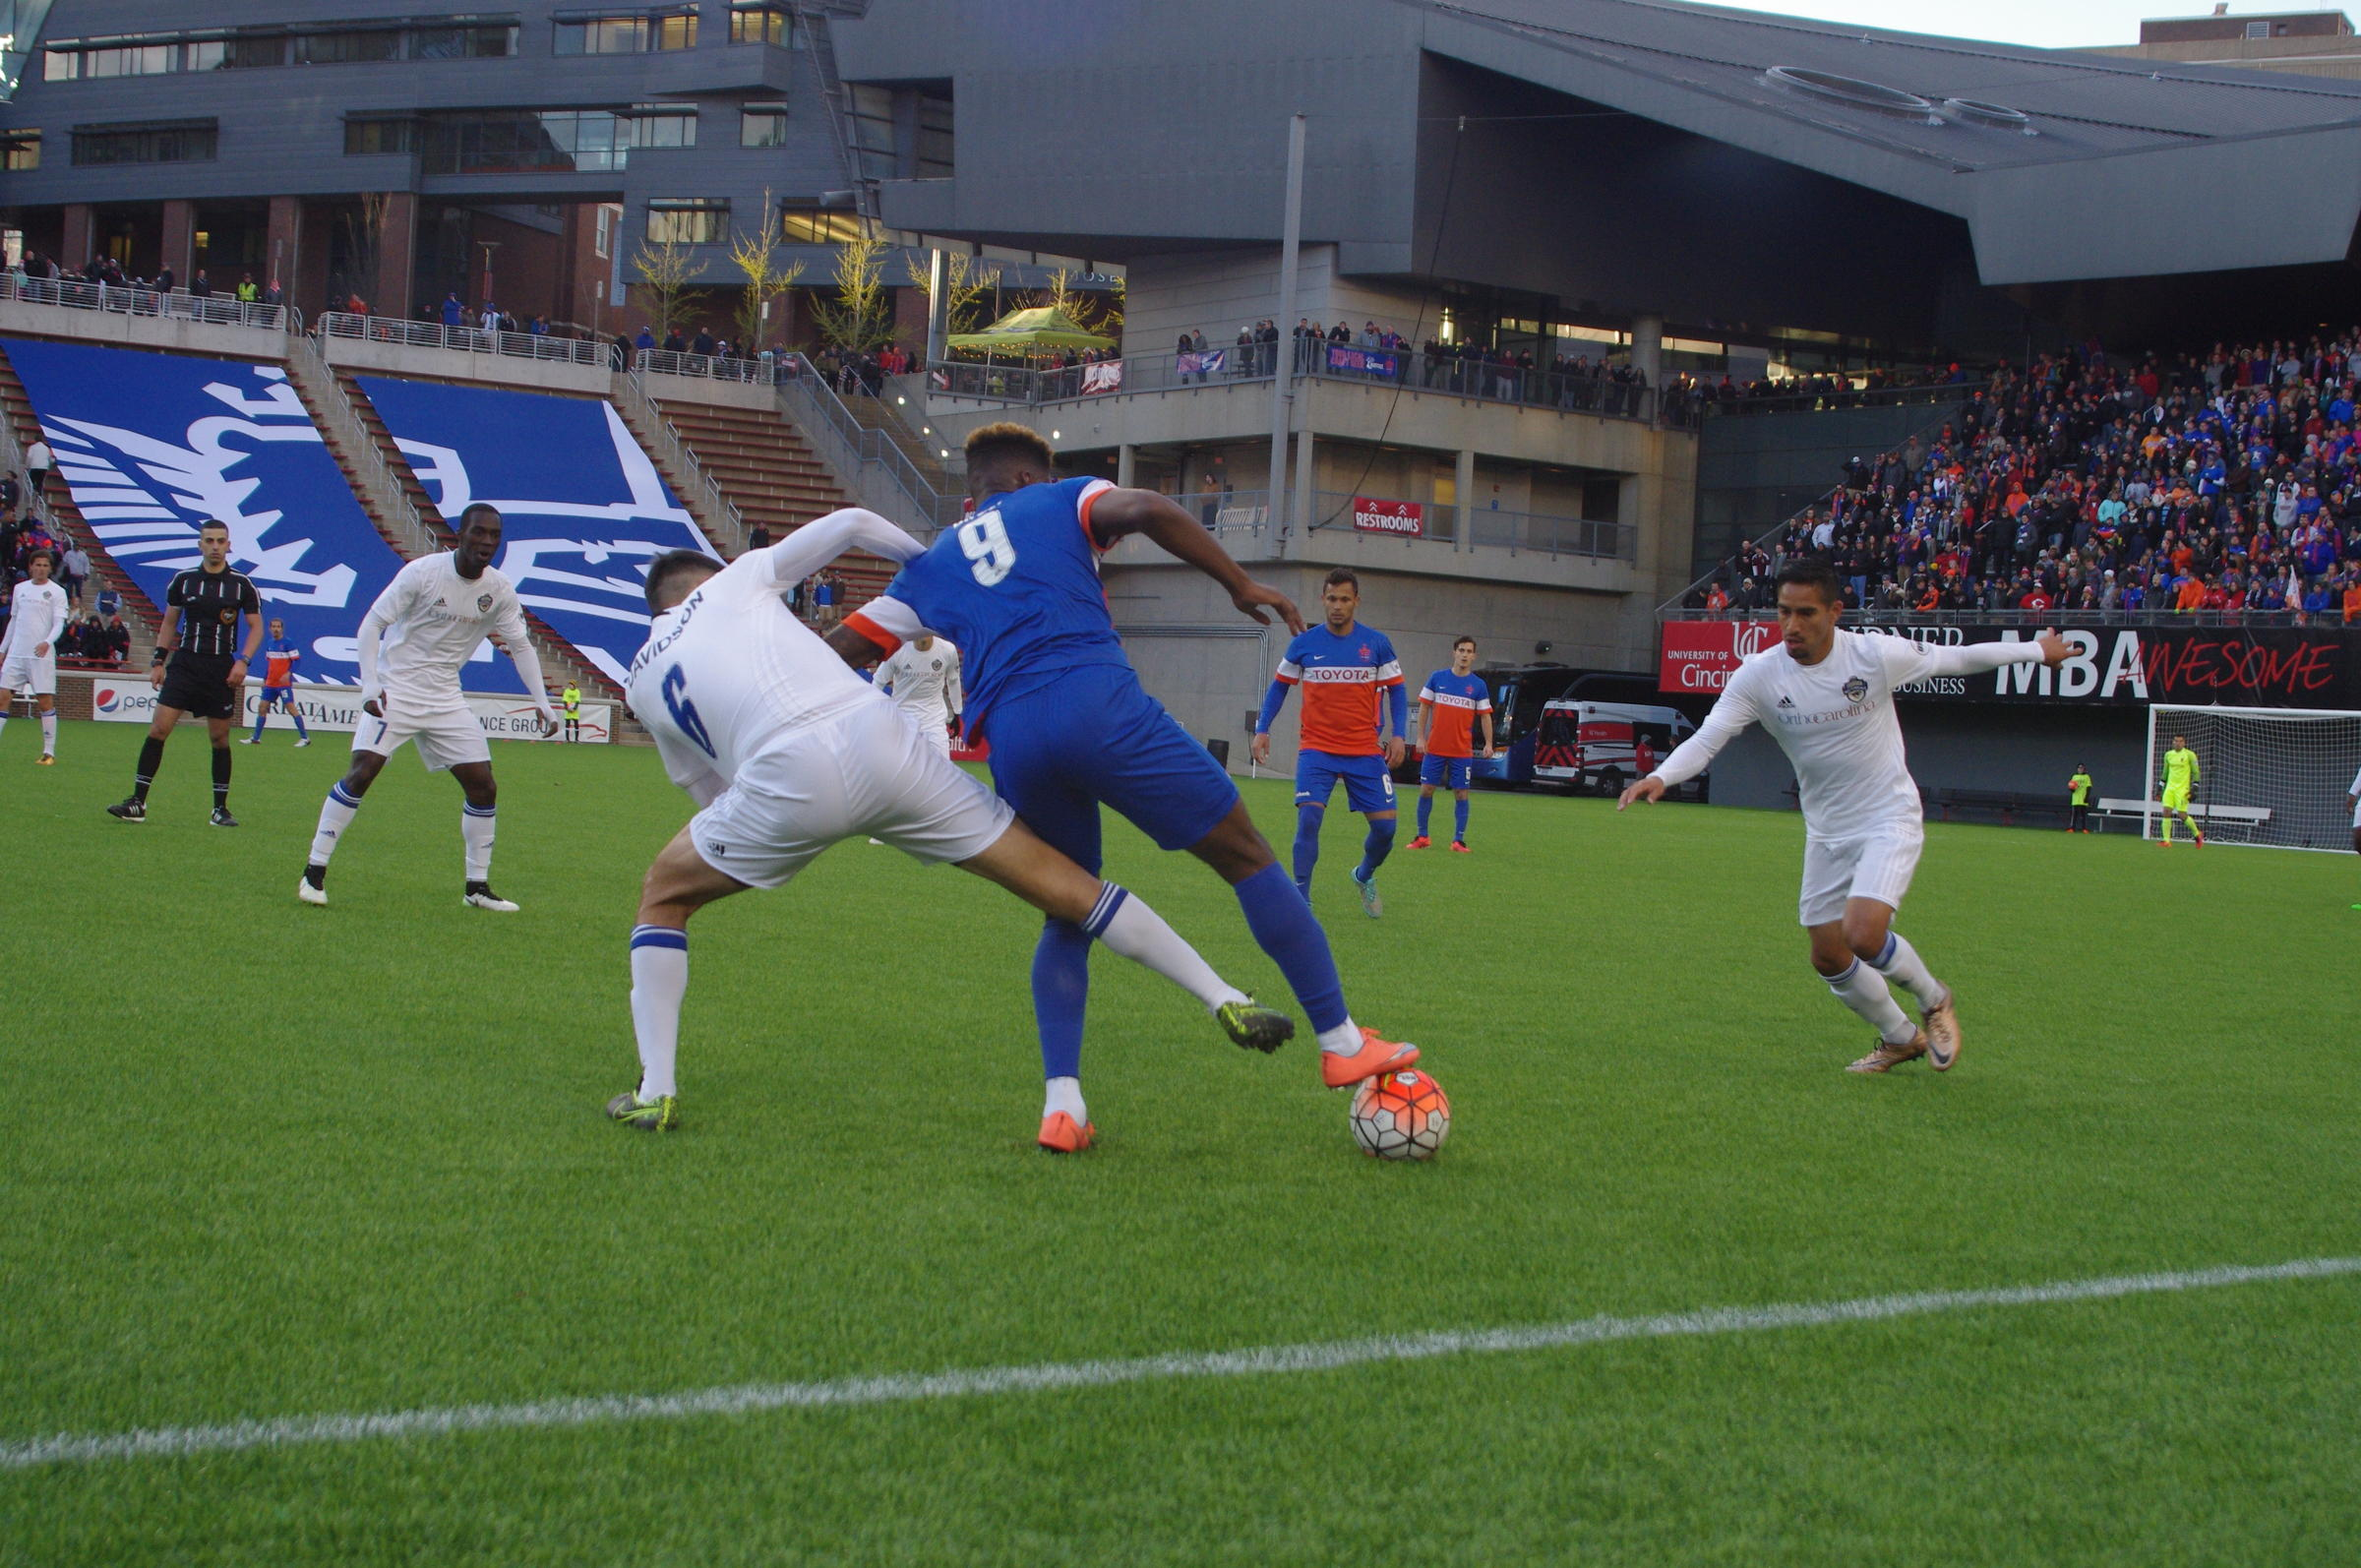 FC Cincinnati wins first ever home game 2-1 over Charlotte Independence.